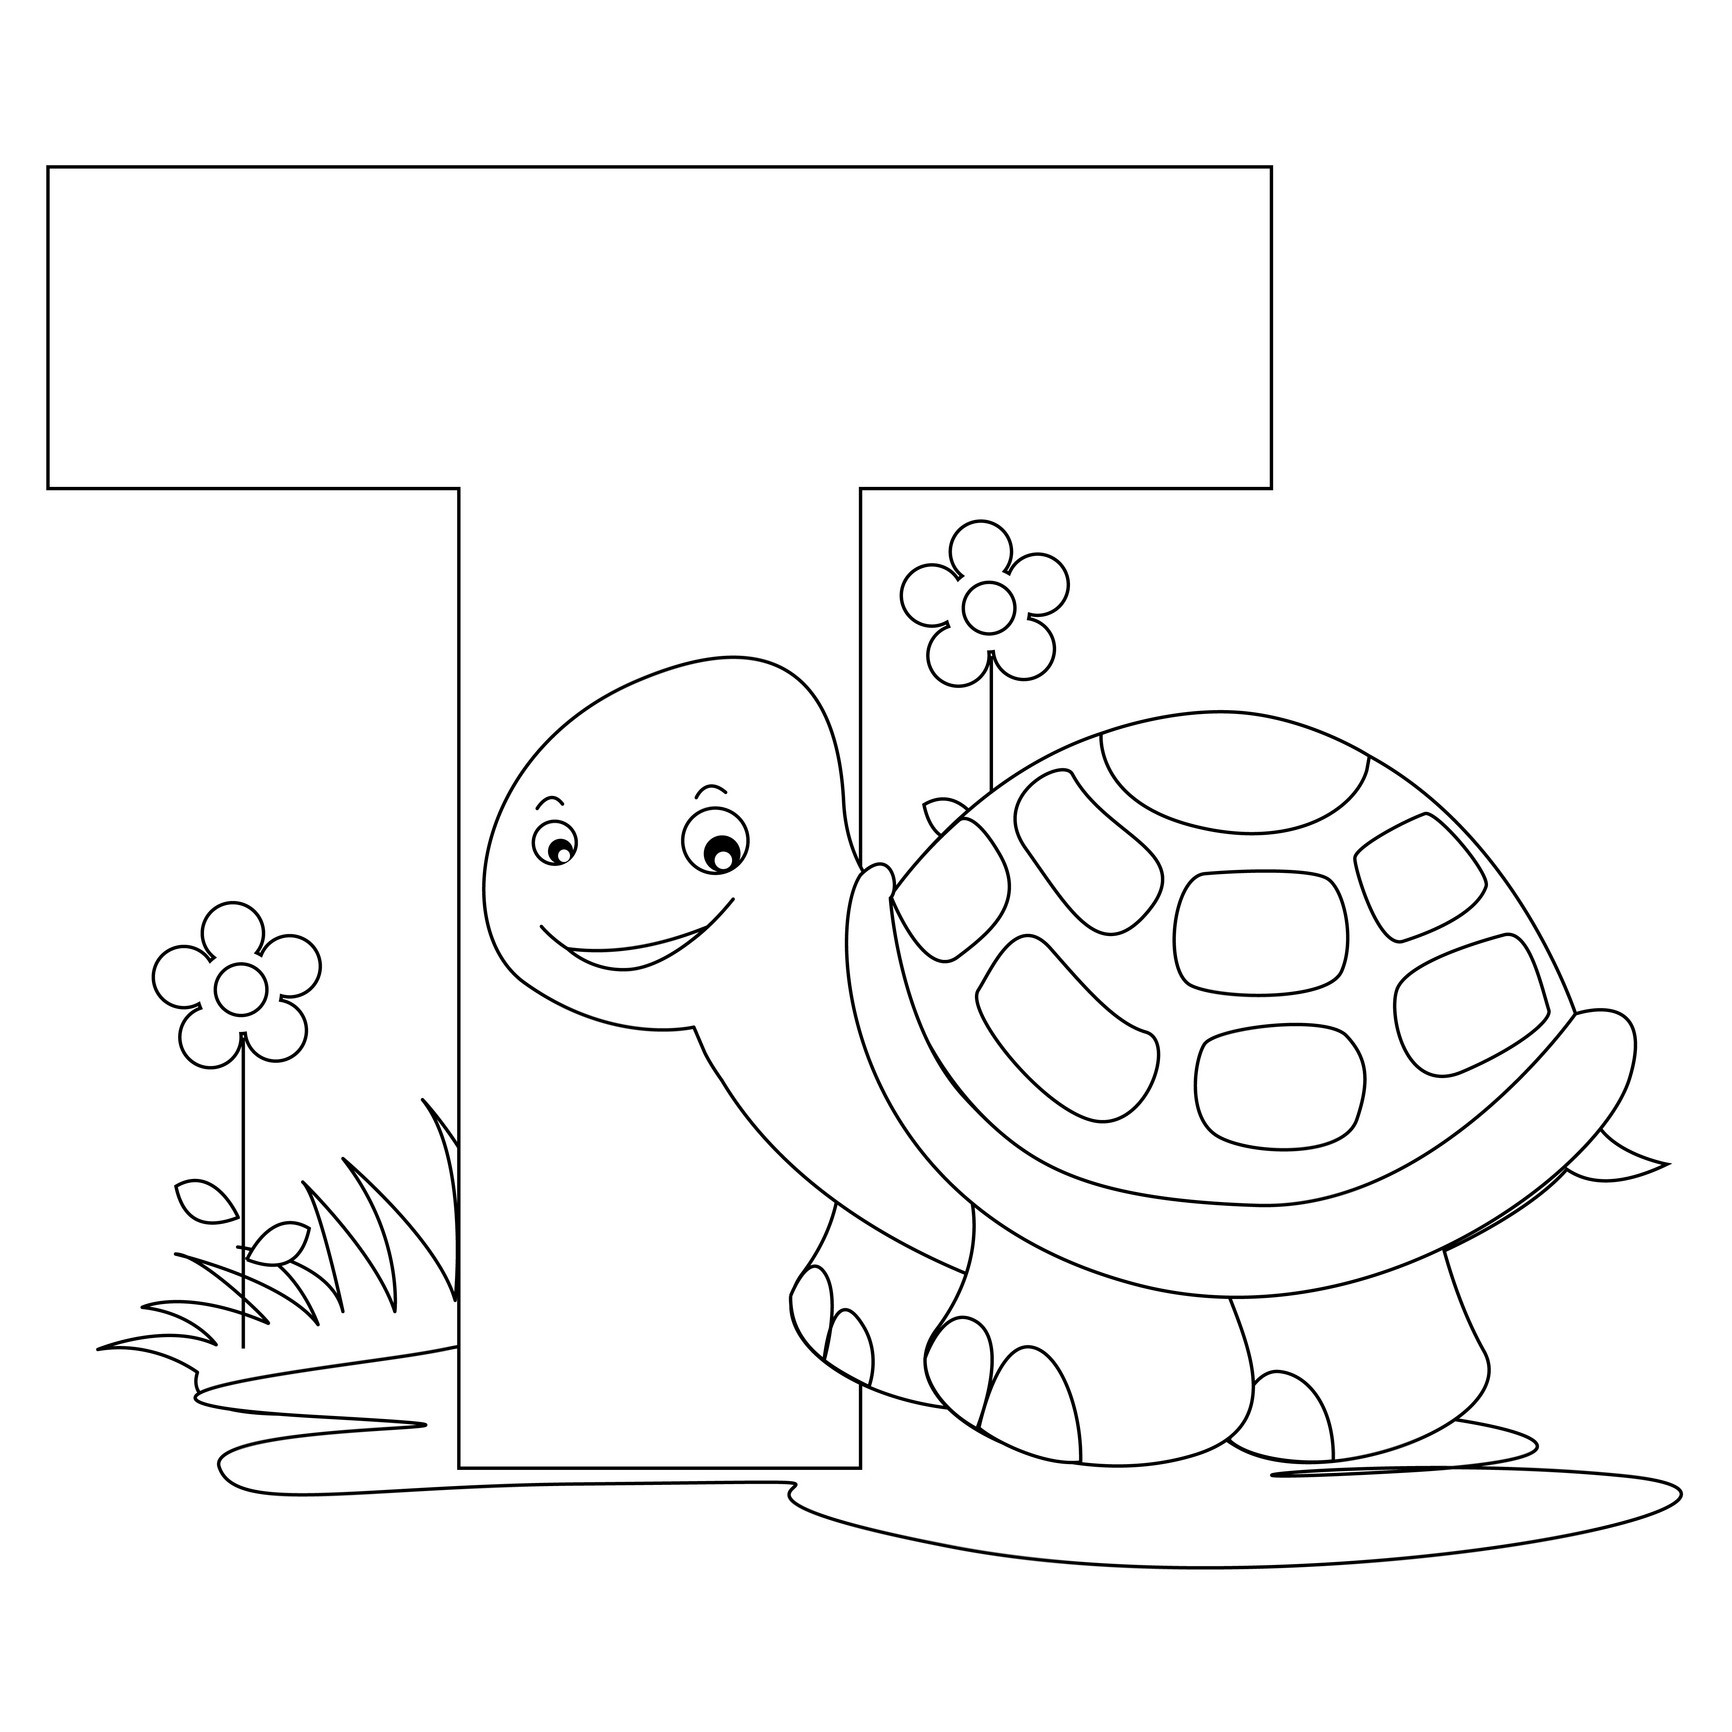 Coloring pages for alphabet - Alphabet Coloring Pages Letter T